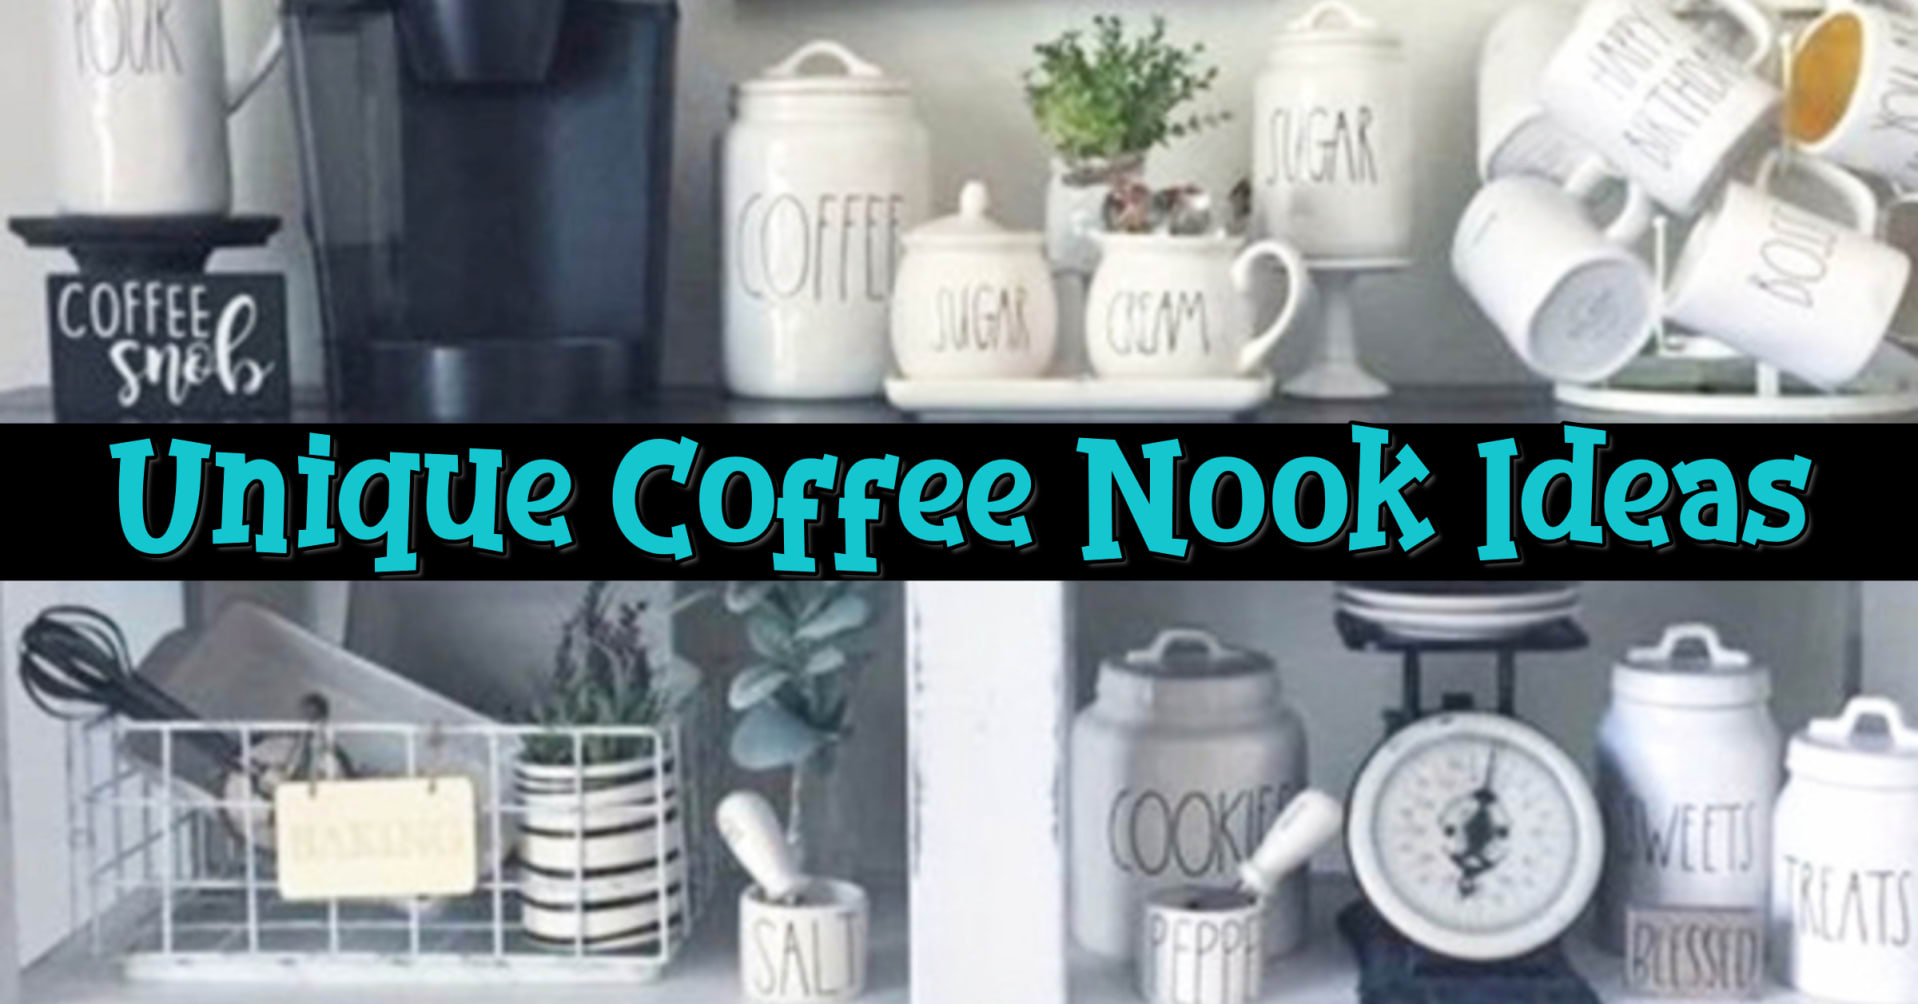 Coffee Nook Ideas We LOVE • These coffee nook ideas for small spaces in your kitchen are so cute - they're like a cozy corner in your kitchen! I'm a big fan of farmhouse kitchen decor - more of a modern rustic type kitchen decor - so these kitchen coffee nooks are PERFECT for my house!